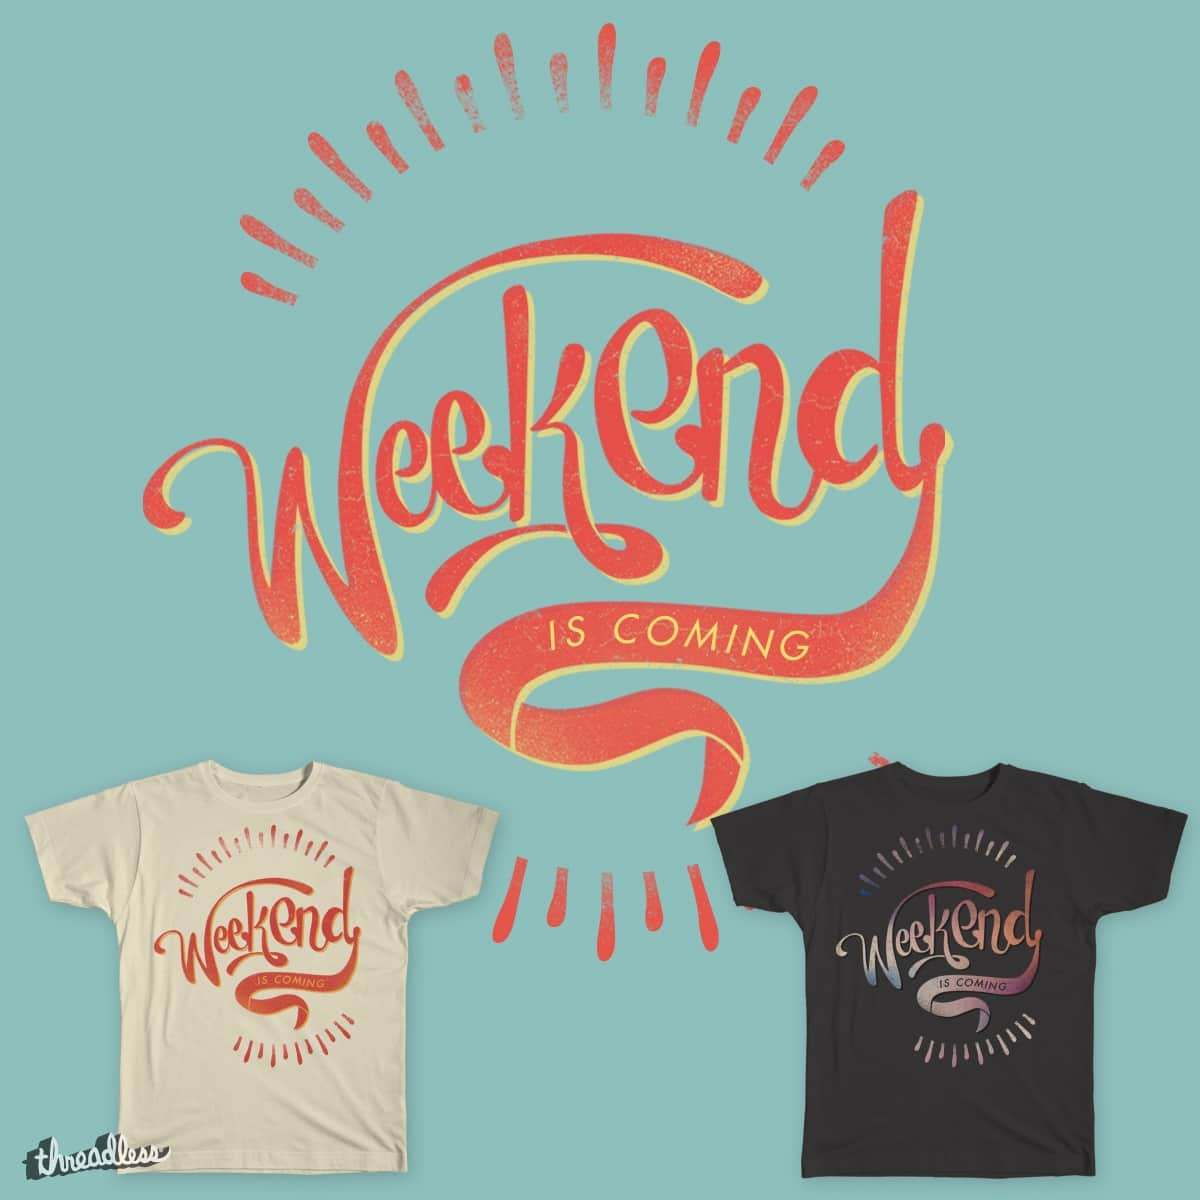 Weekend is coming! by takoyakiproject on Threadless